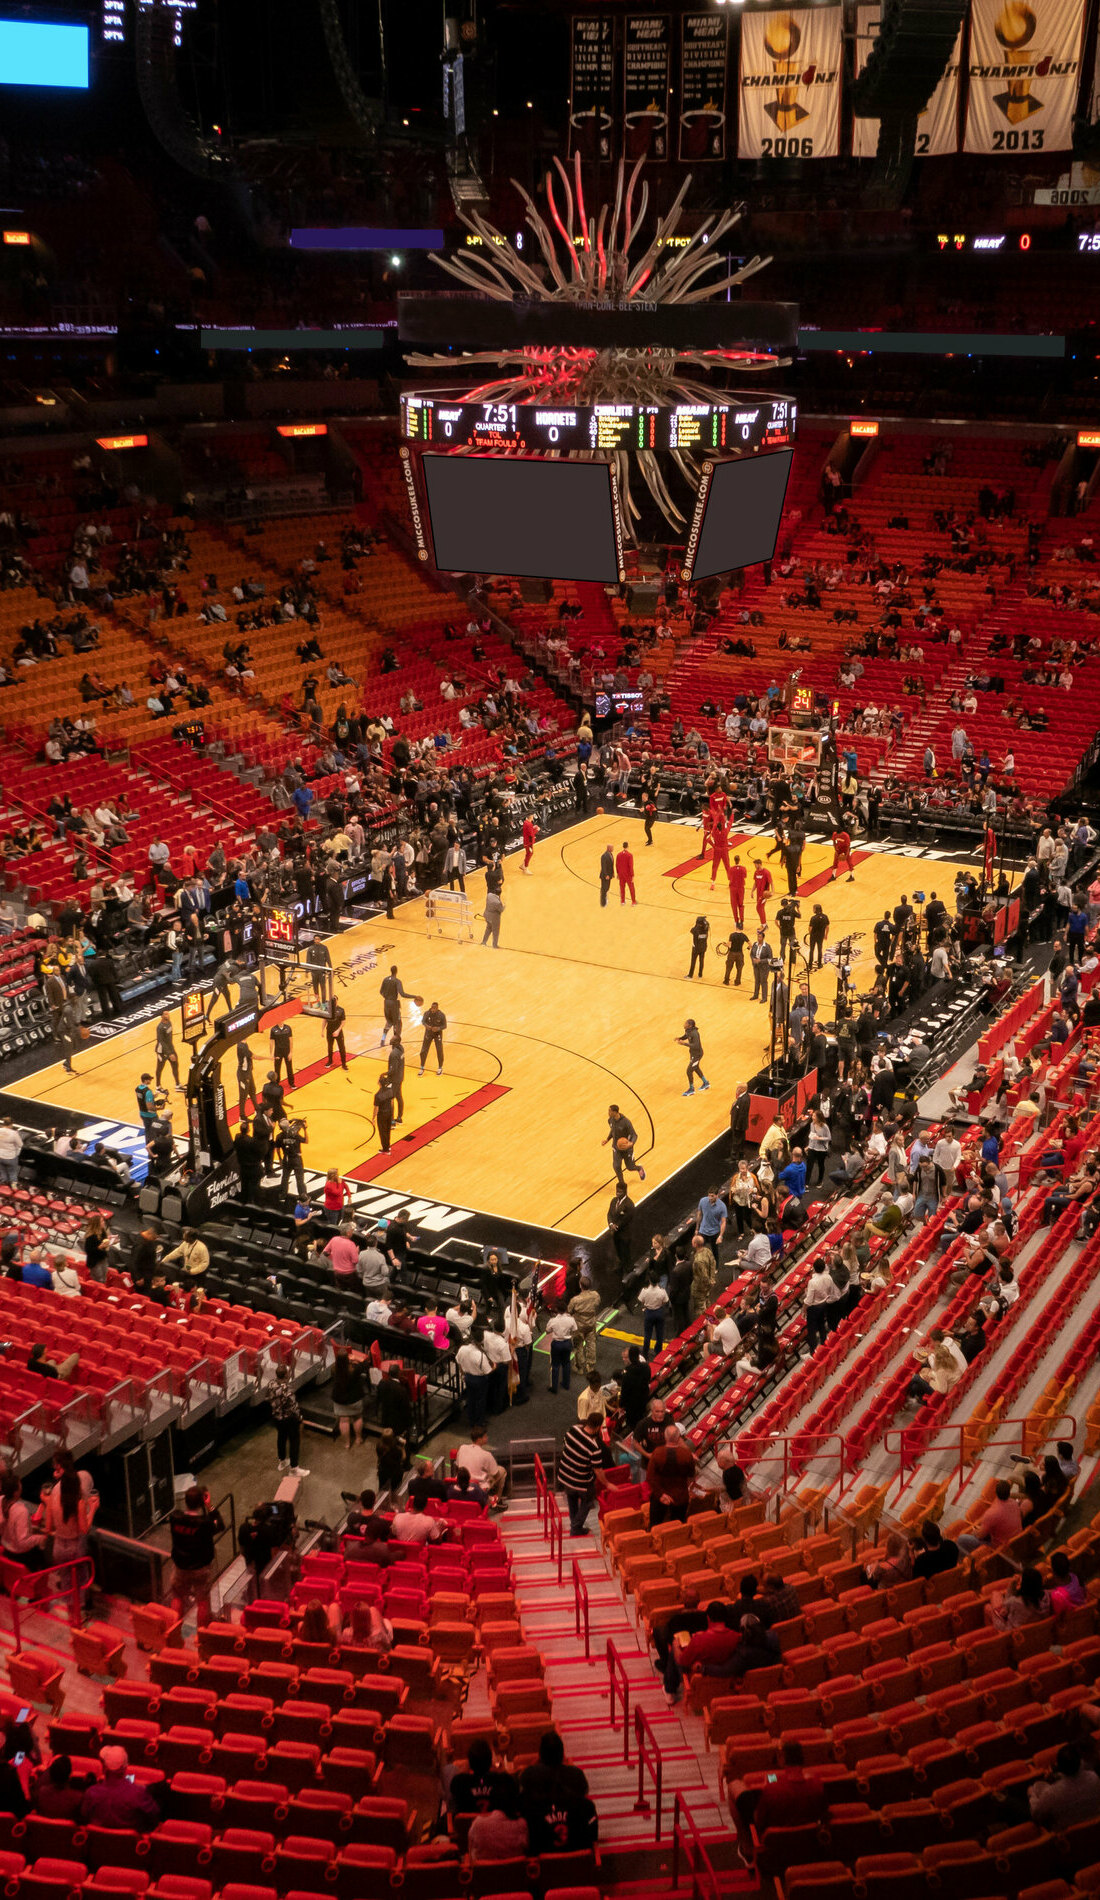 A Miami Heat live event